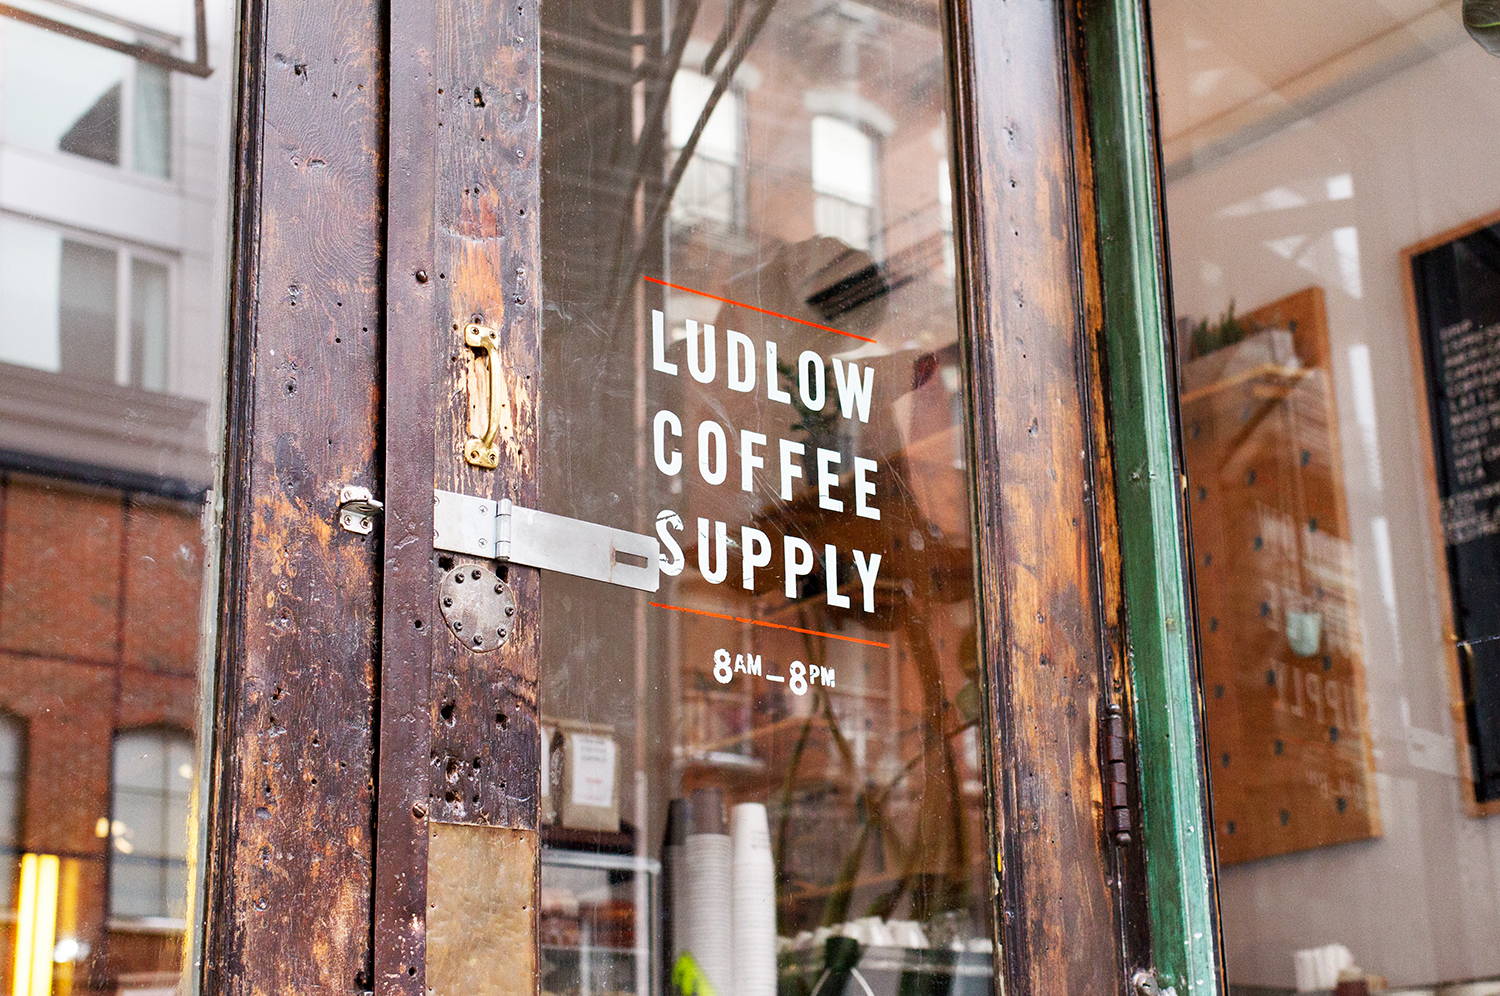 Ludlow Coffee Supply - New York